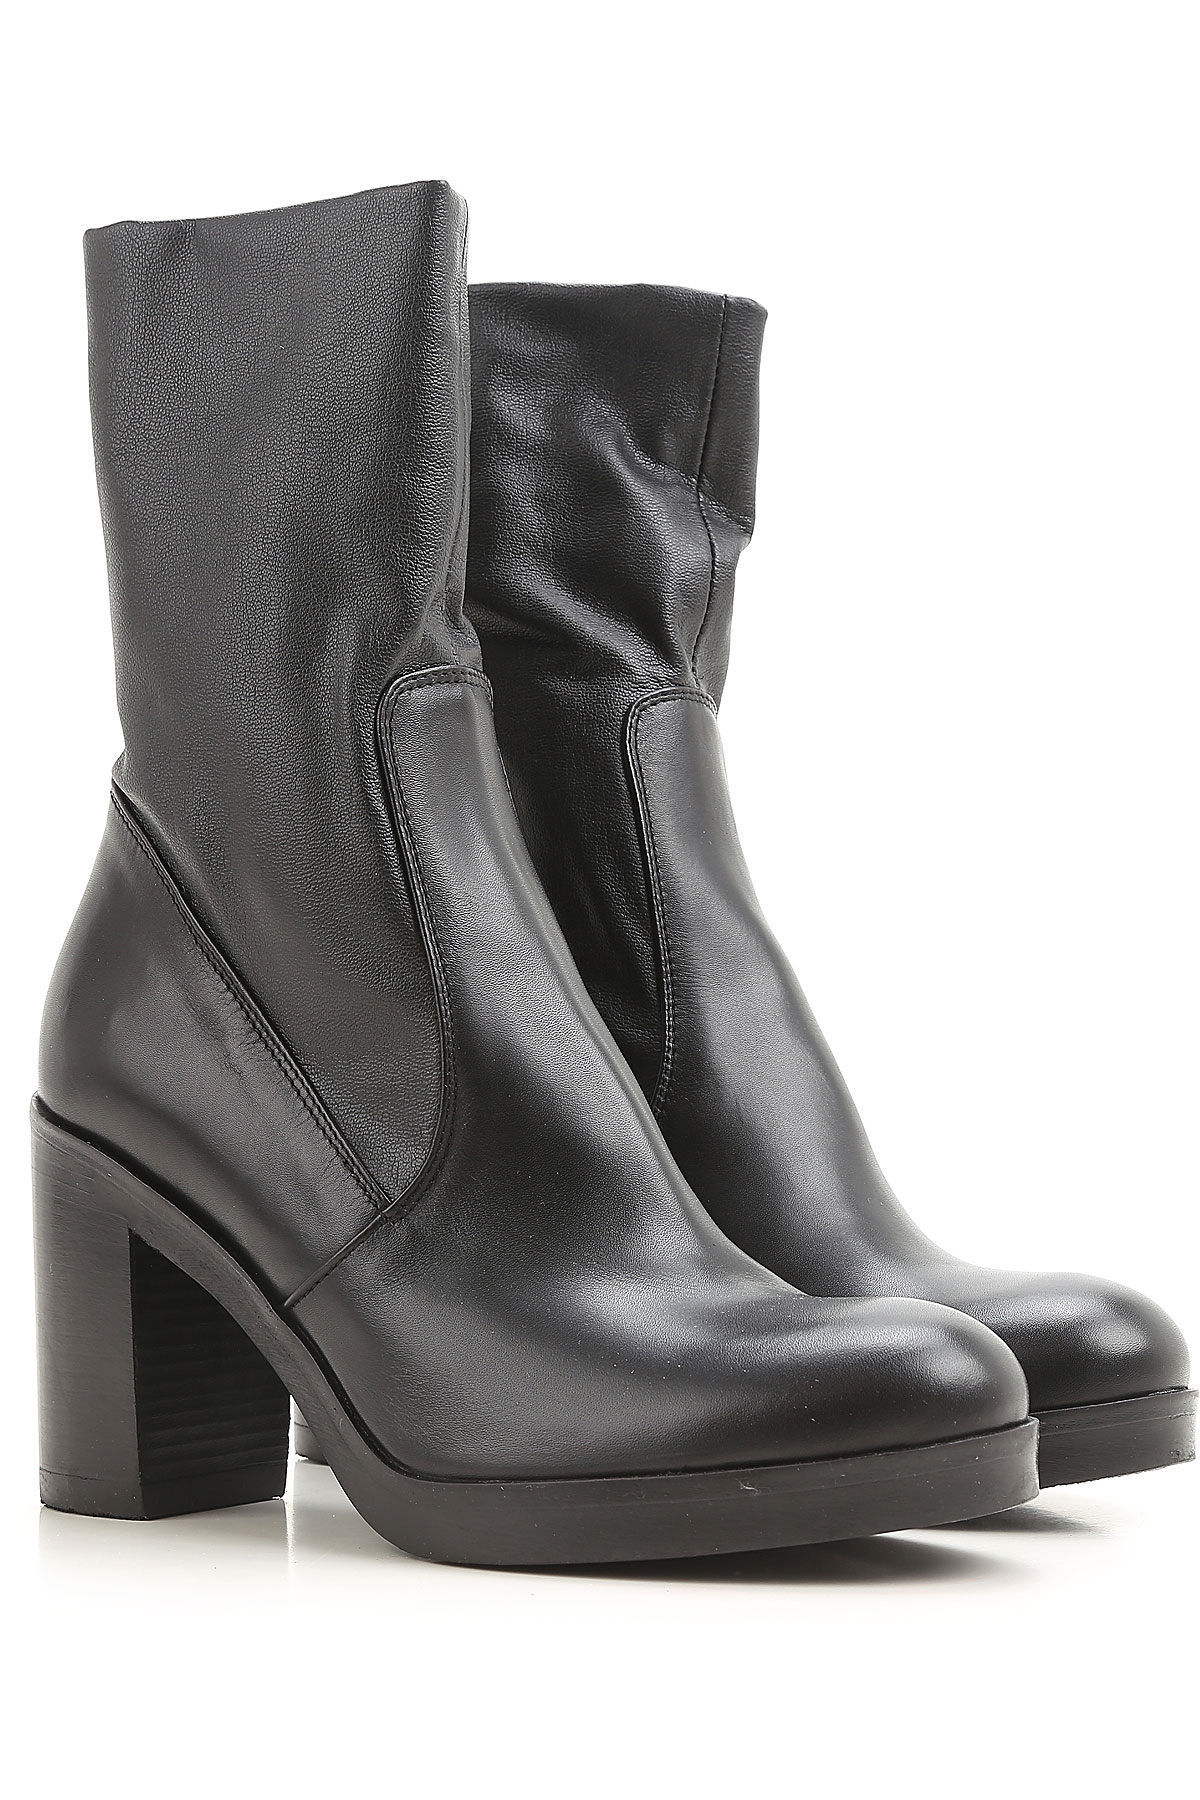 Image of Strategia Boots for Women, Booties, Black, Leather, 2017, 6 7 8 9